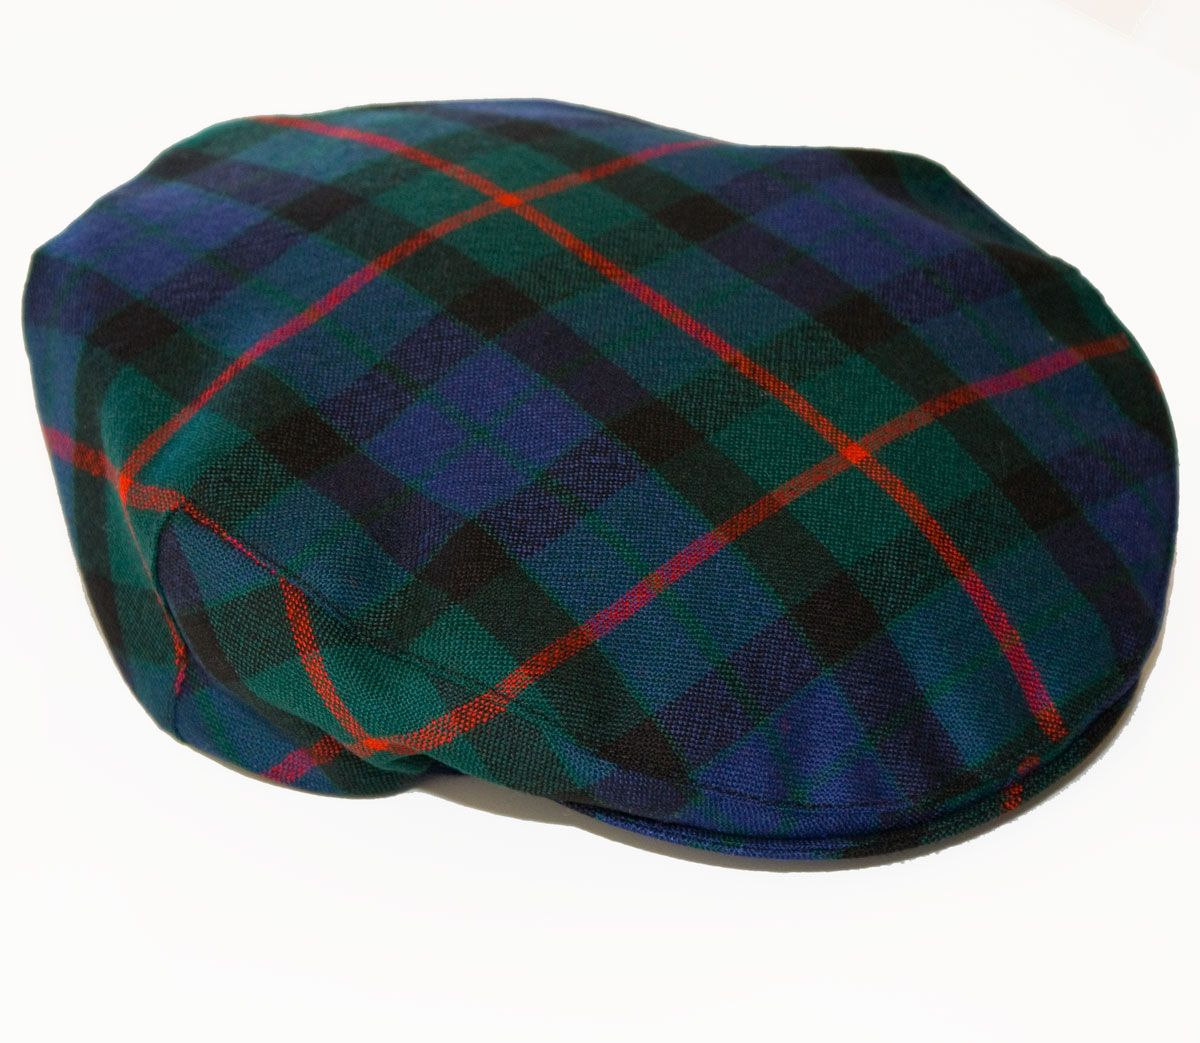 21e5edc6796d0 Stand out on the course with this classic tartan golf cap from Scots  Connection. https